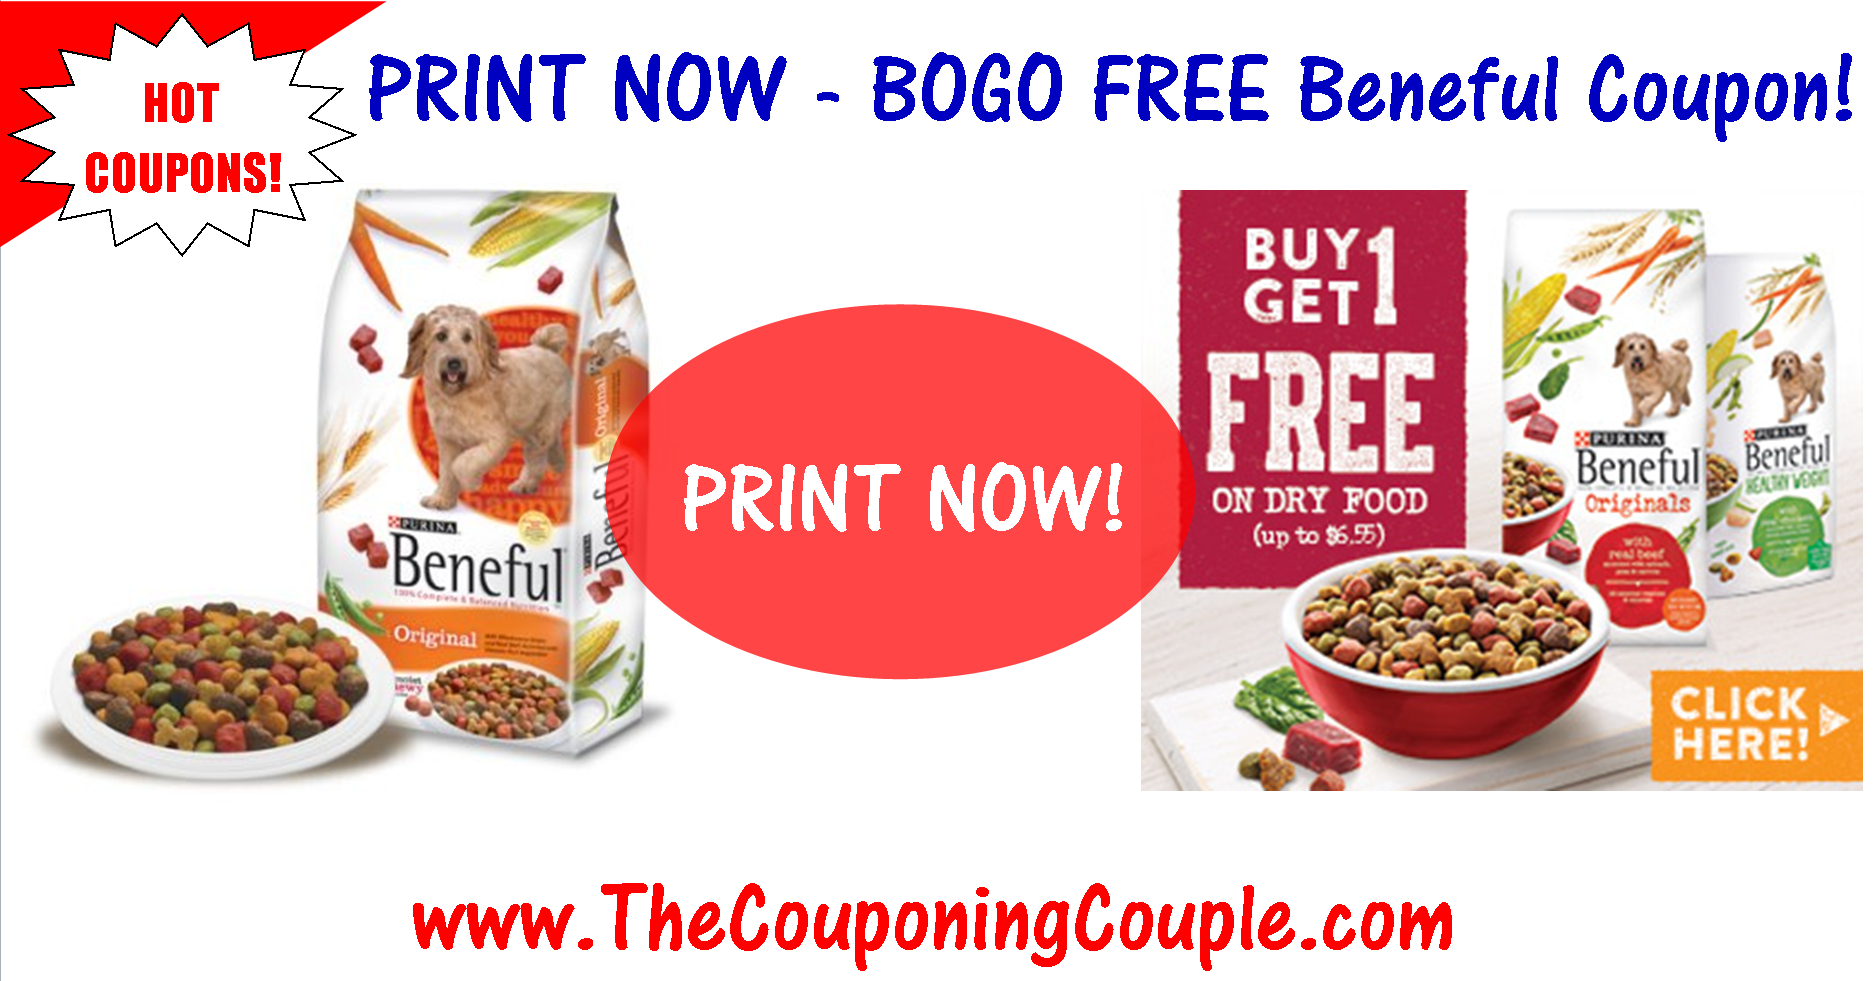 Reset*** Bogo Free Beneful Dog Food Printable Coupon ~ Print Now! - Bogo Free Coupons Printable